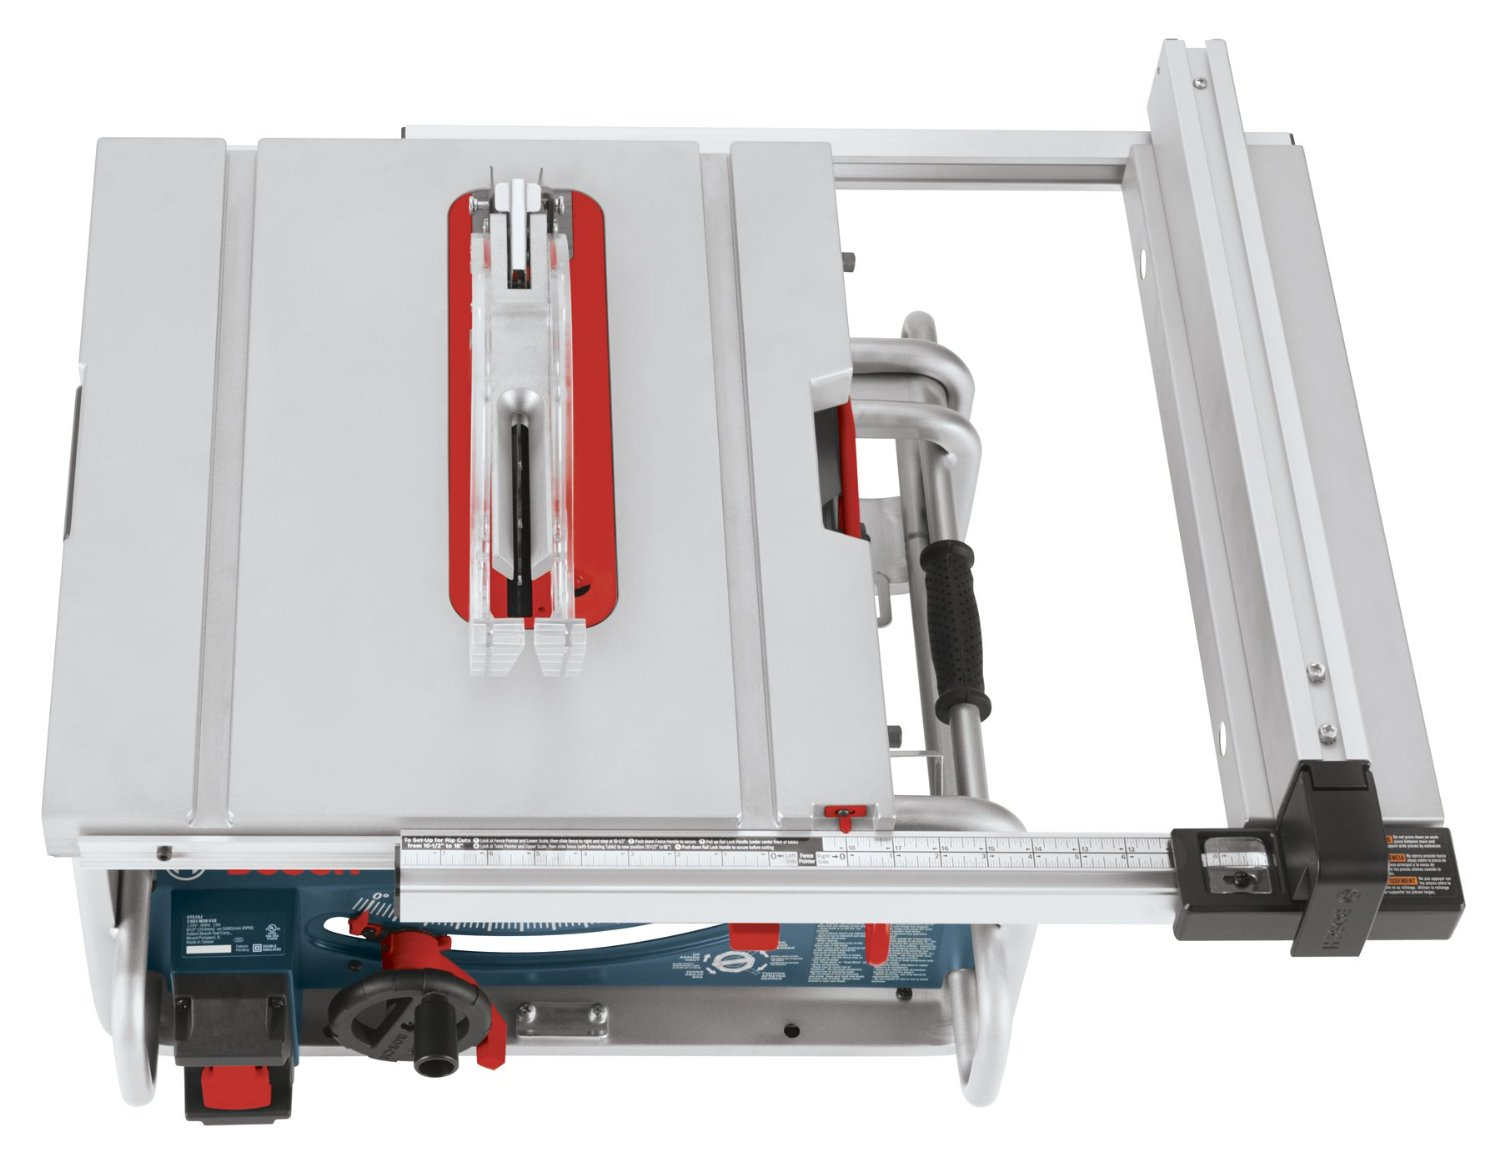 Bosch Gts1031 Review Table Saw Central